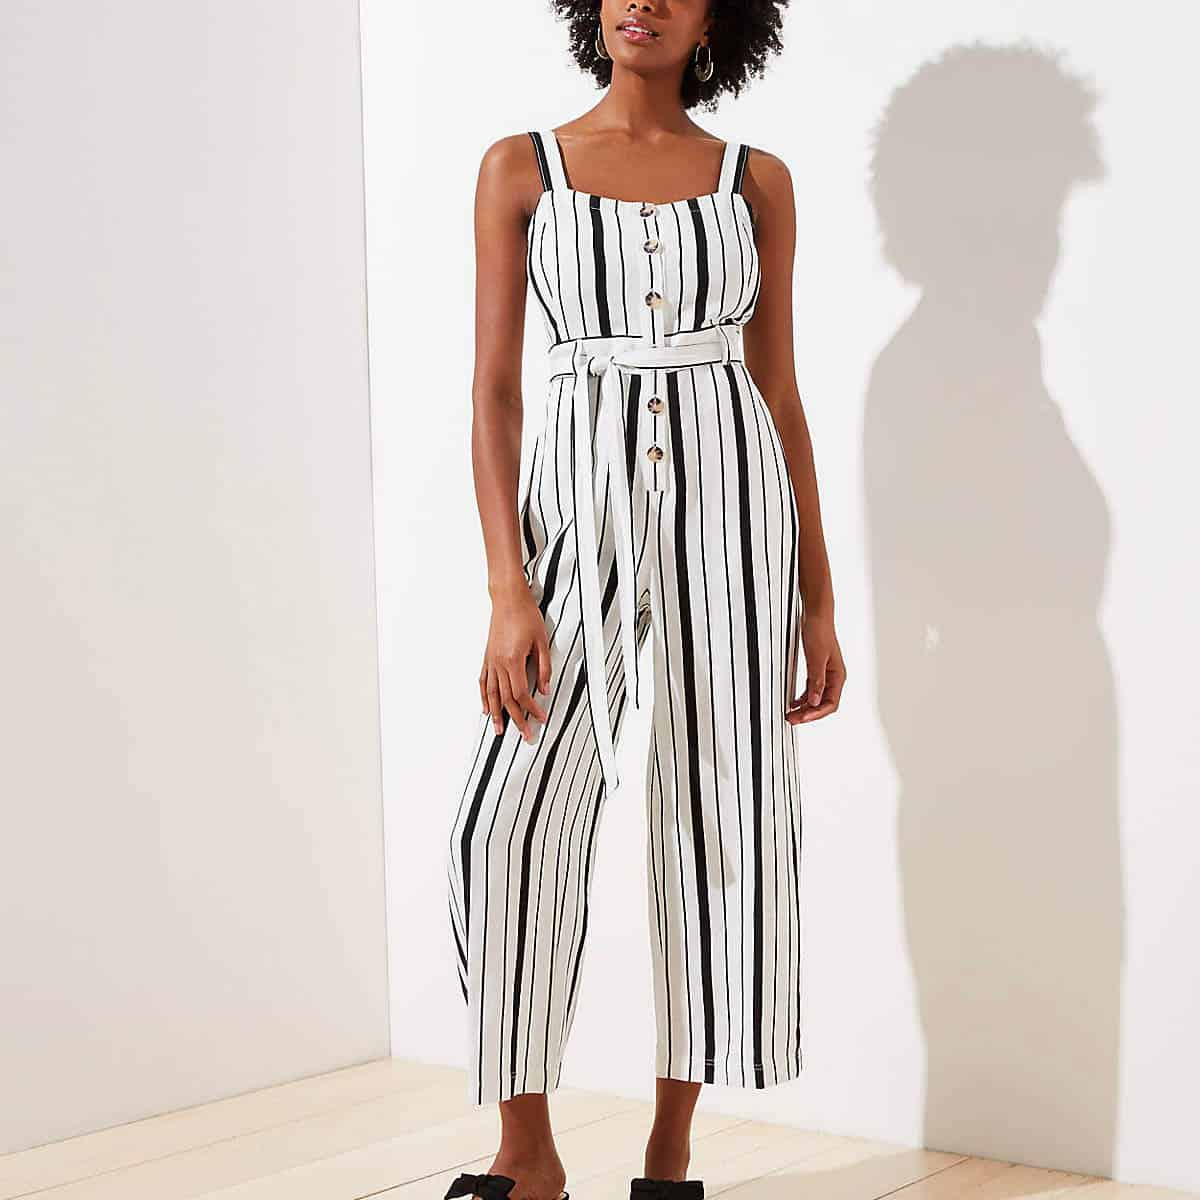 10 Stylish and Comfy Summer Clothes I'm Adding to My Wardrobe Right Now 4